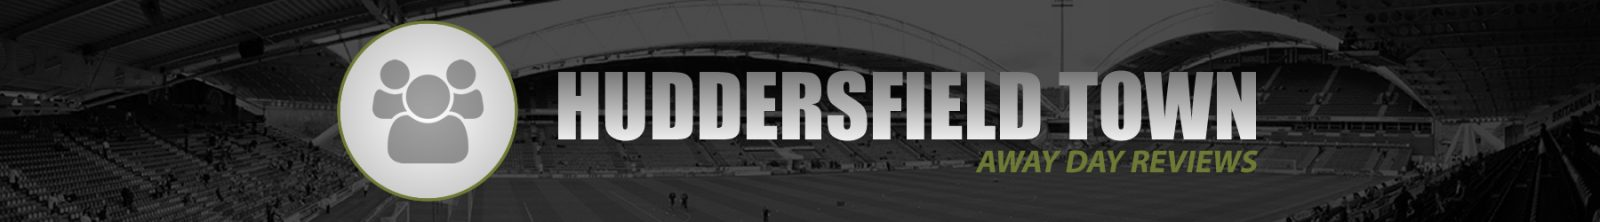 Review Huddersfield Town